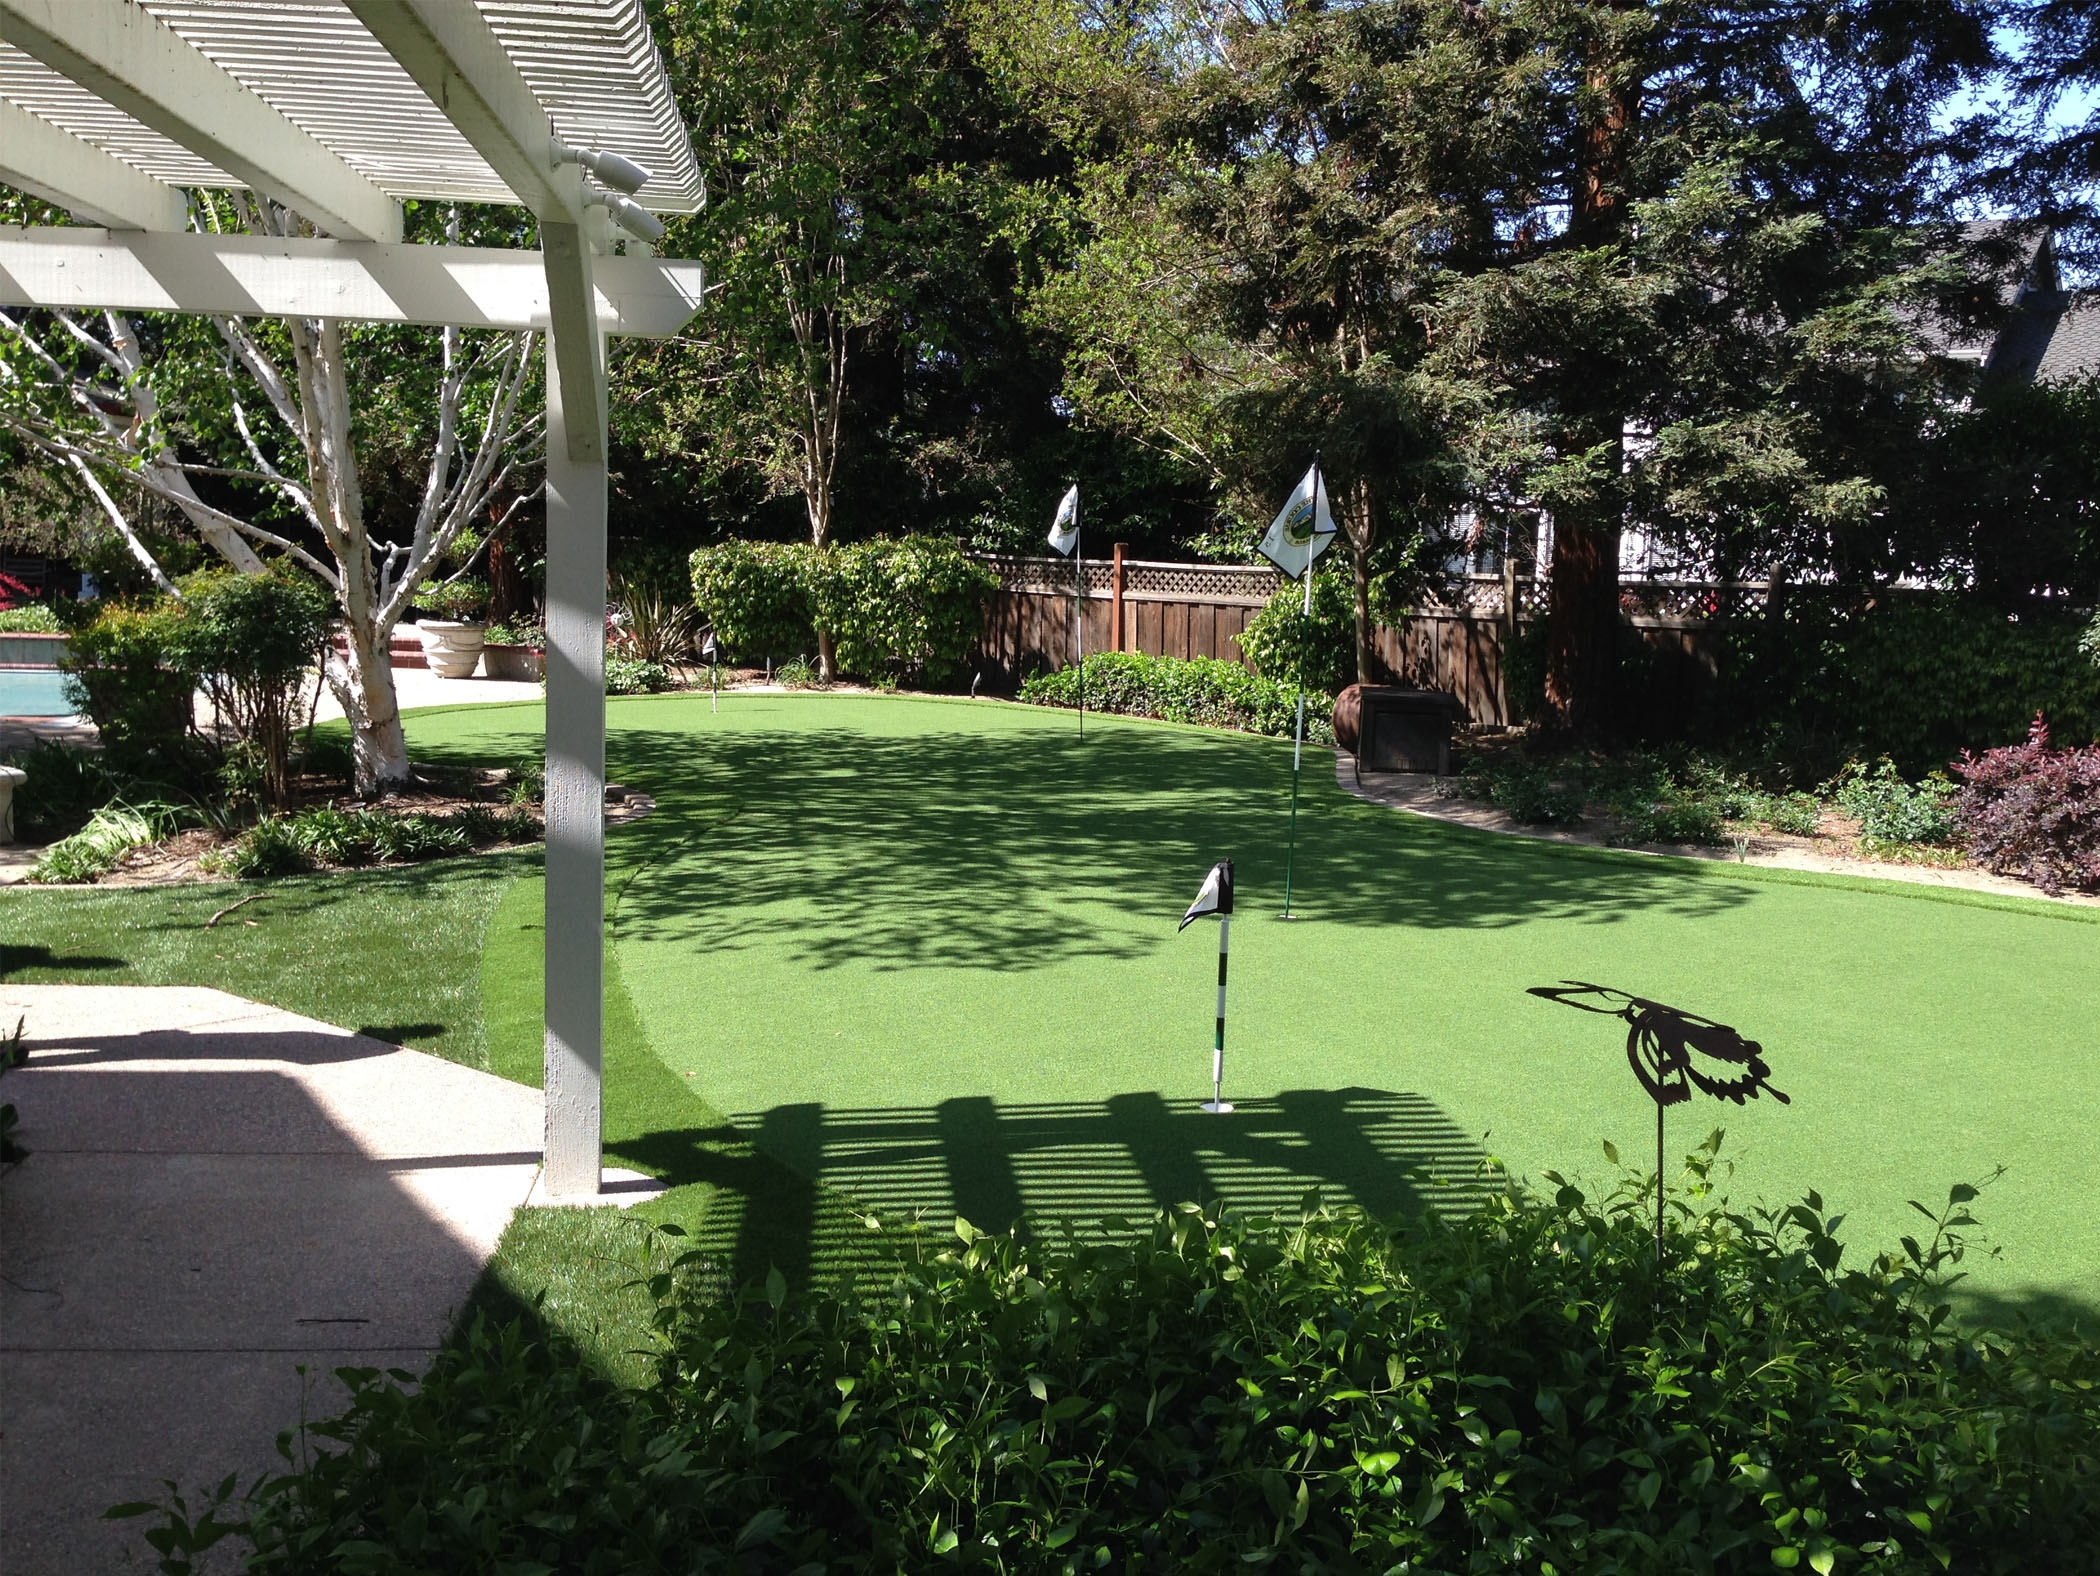 Turf Vs Grass Backyard : Responses To Synthetic Grass, Artificial Grass North Hollywood